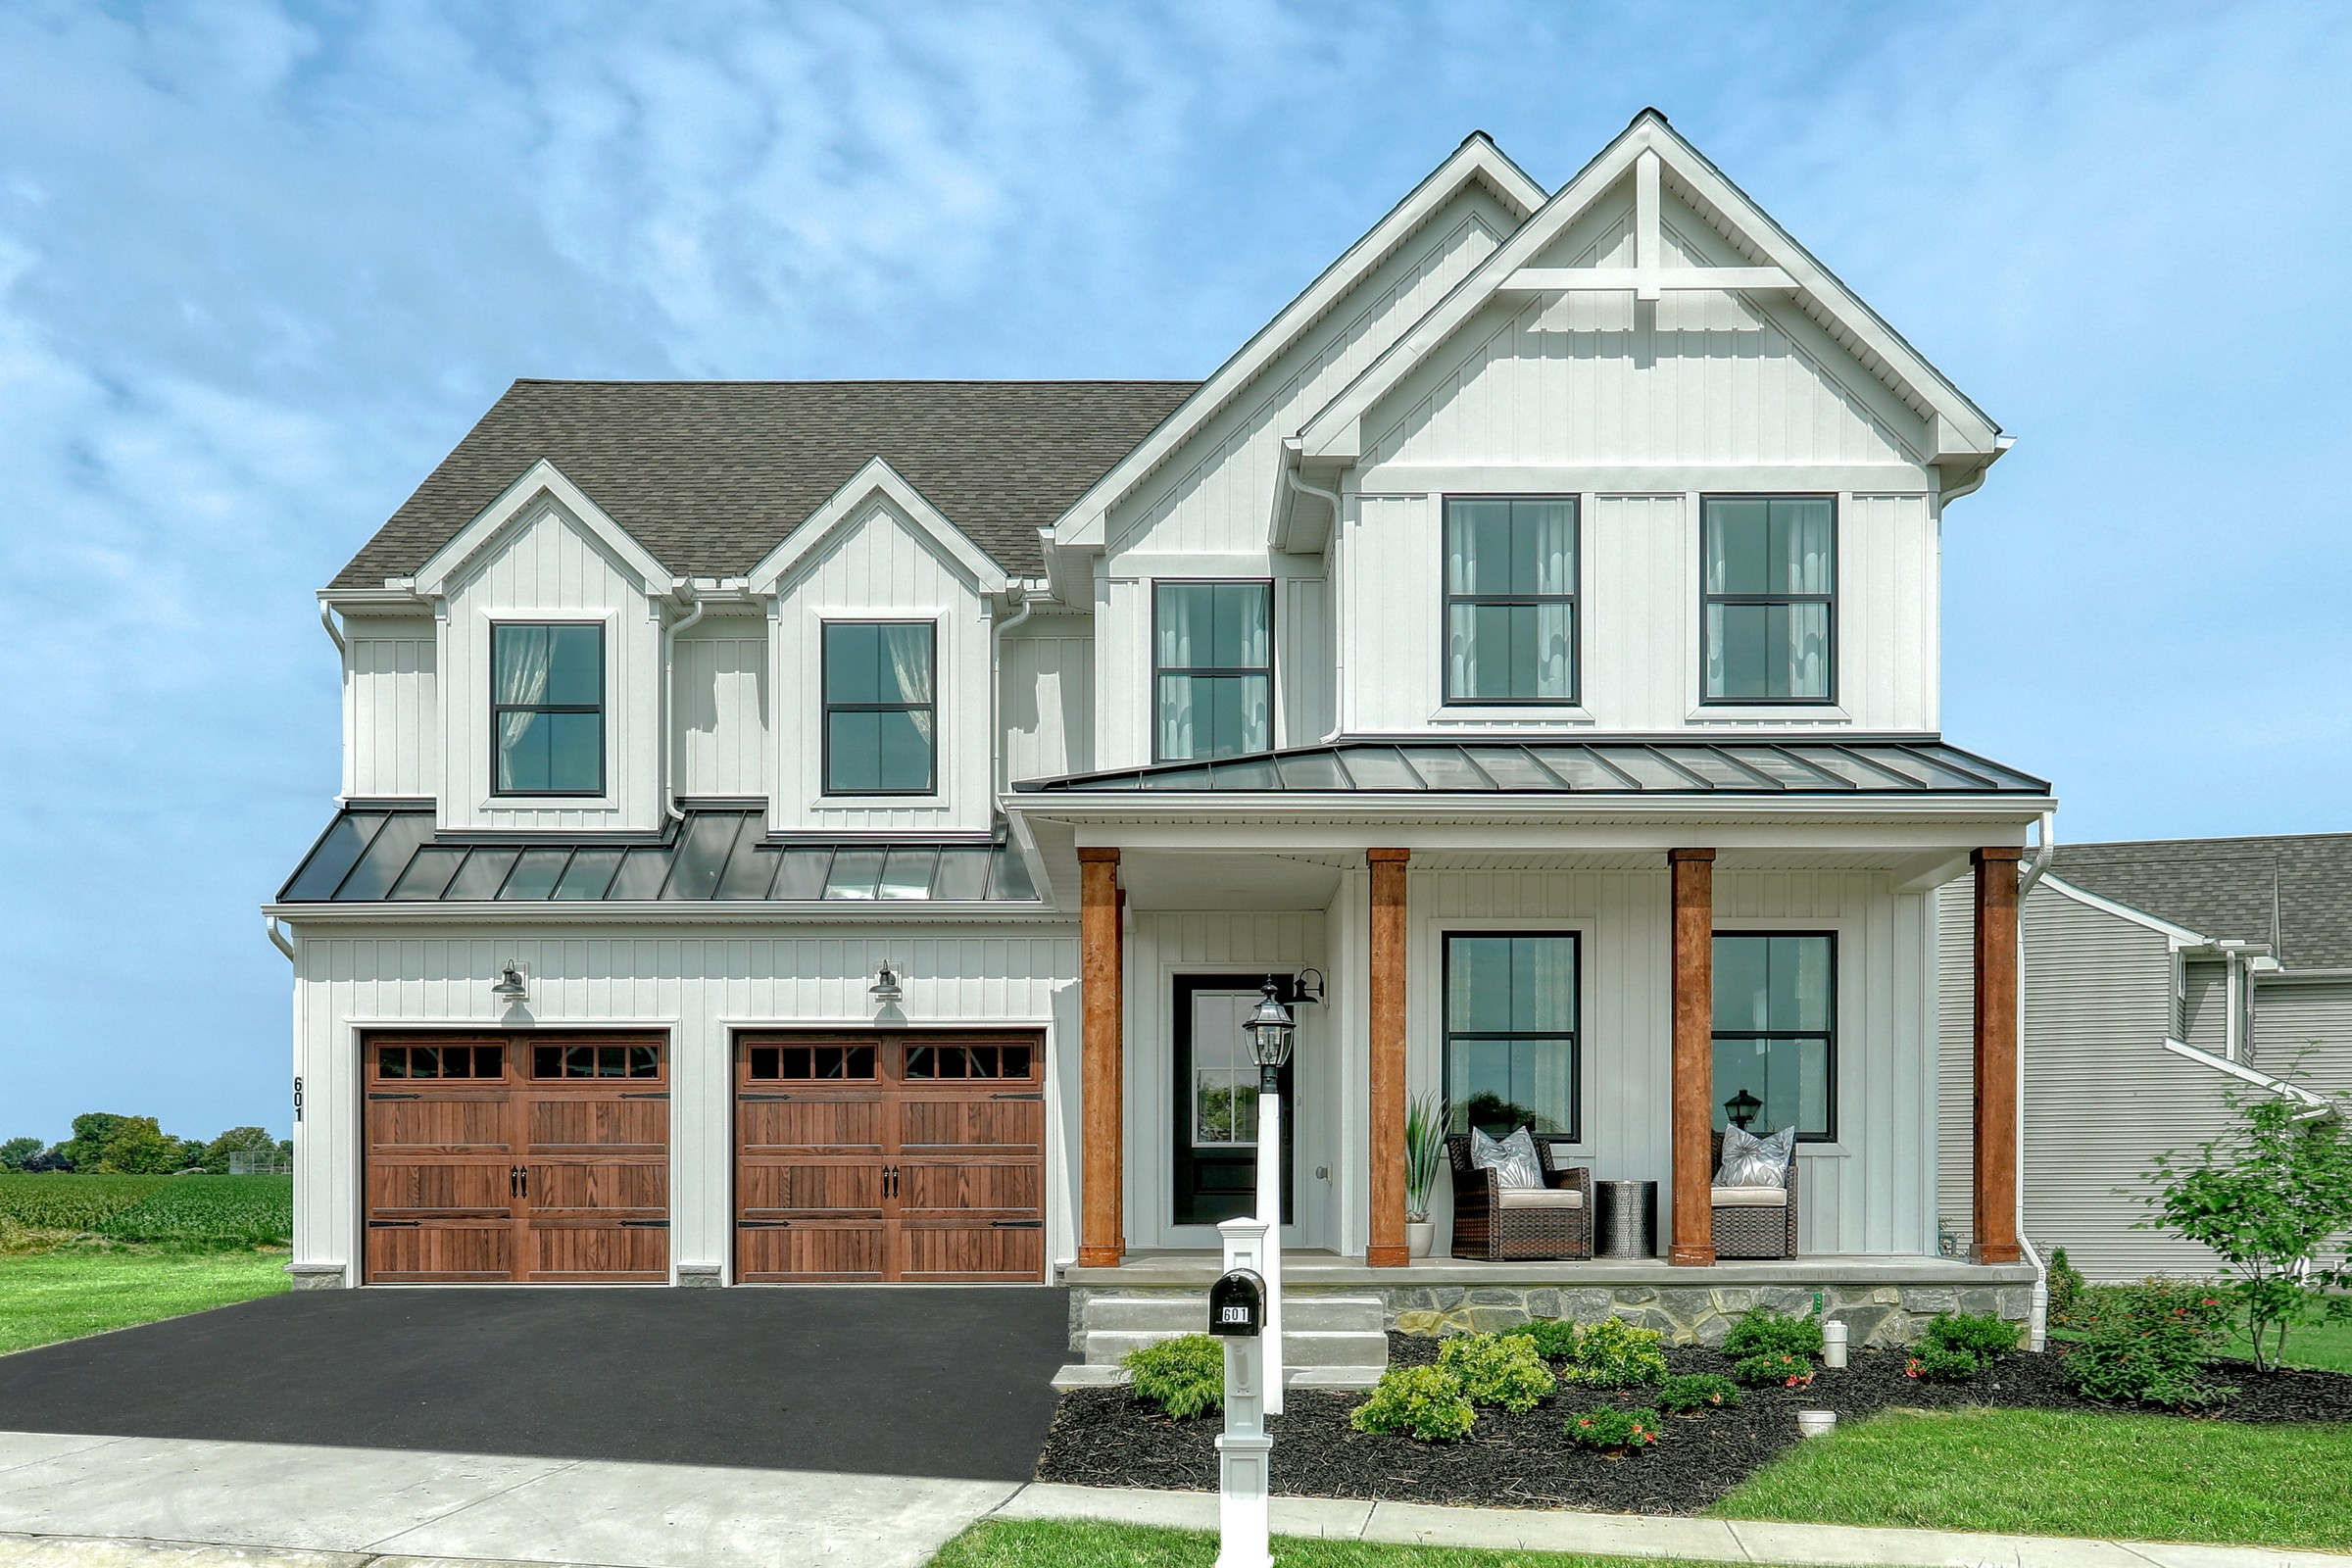 Keystone Wins Best Of Show In 2019 Lancaster Parade Of Homes